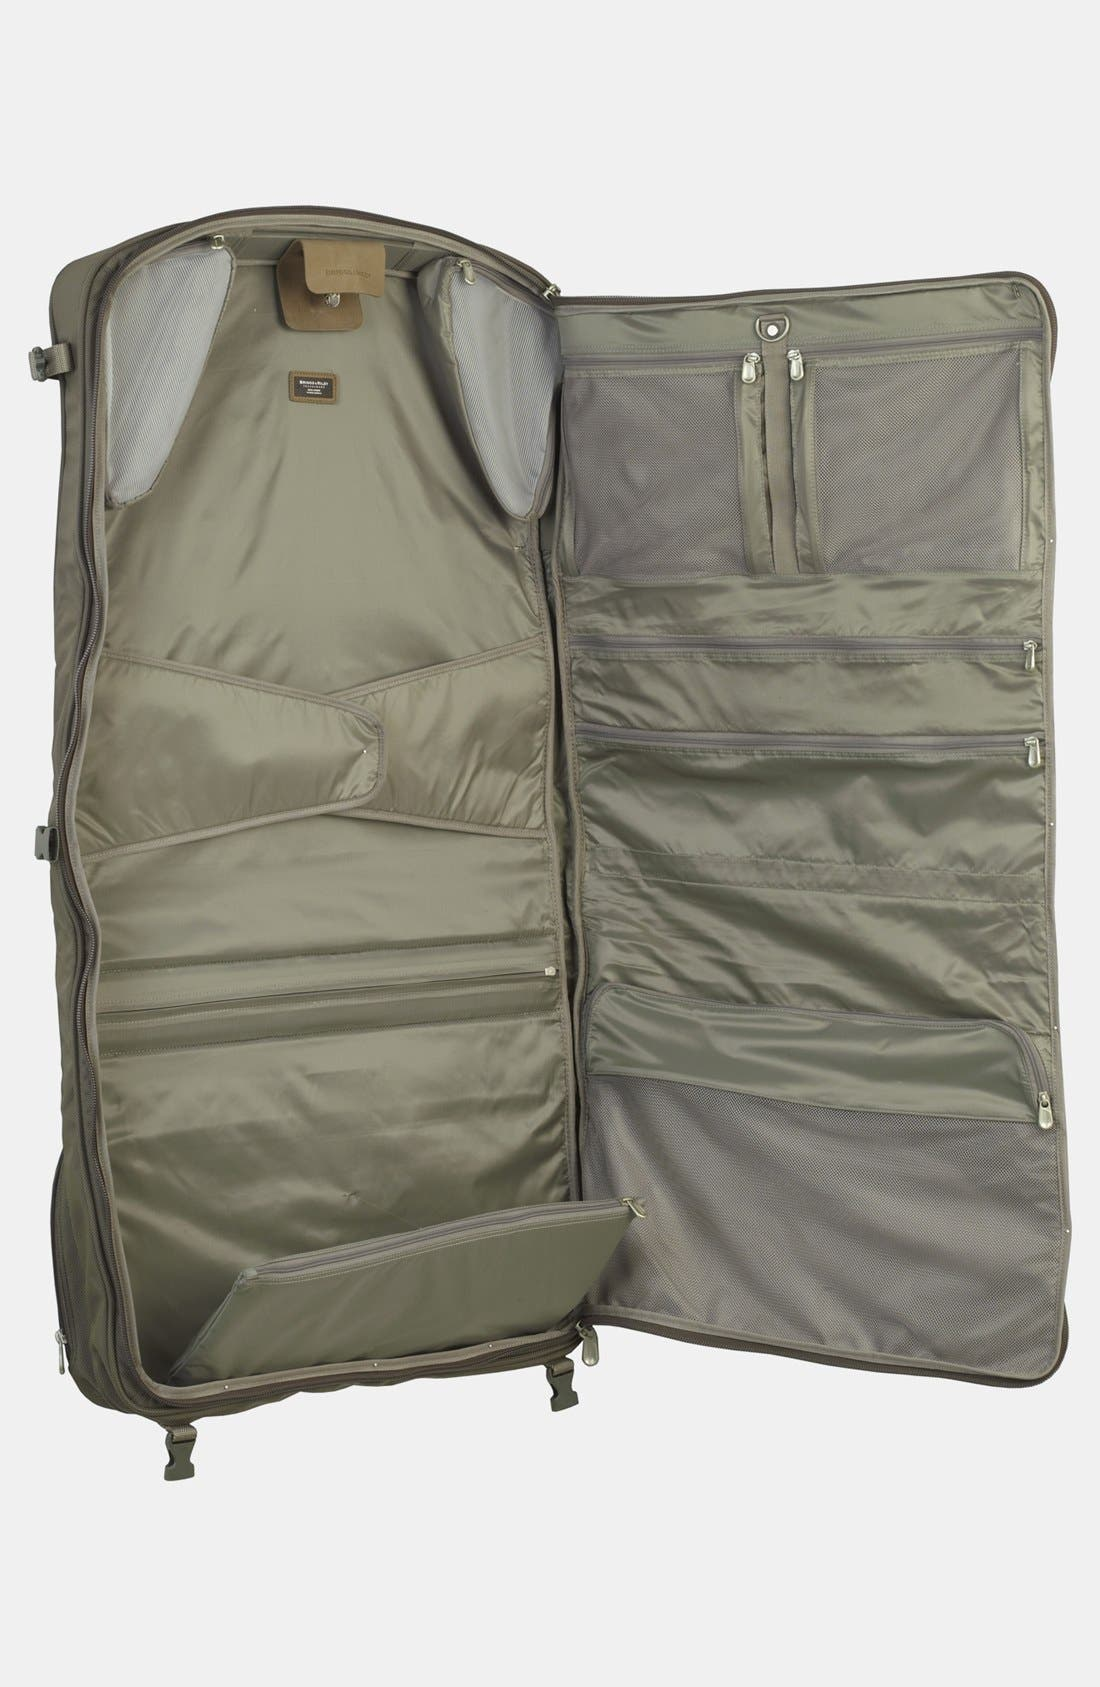 Alternate Image 2  - Briggs & Riley 'Baseline - Compact' Garment Bag